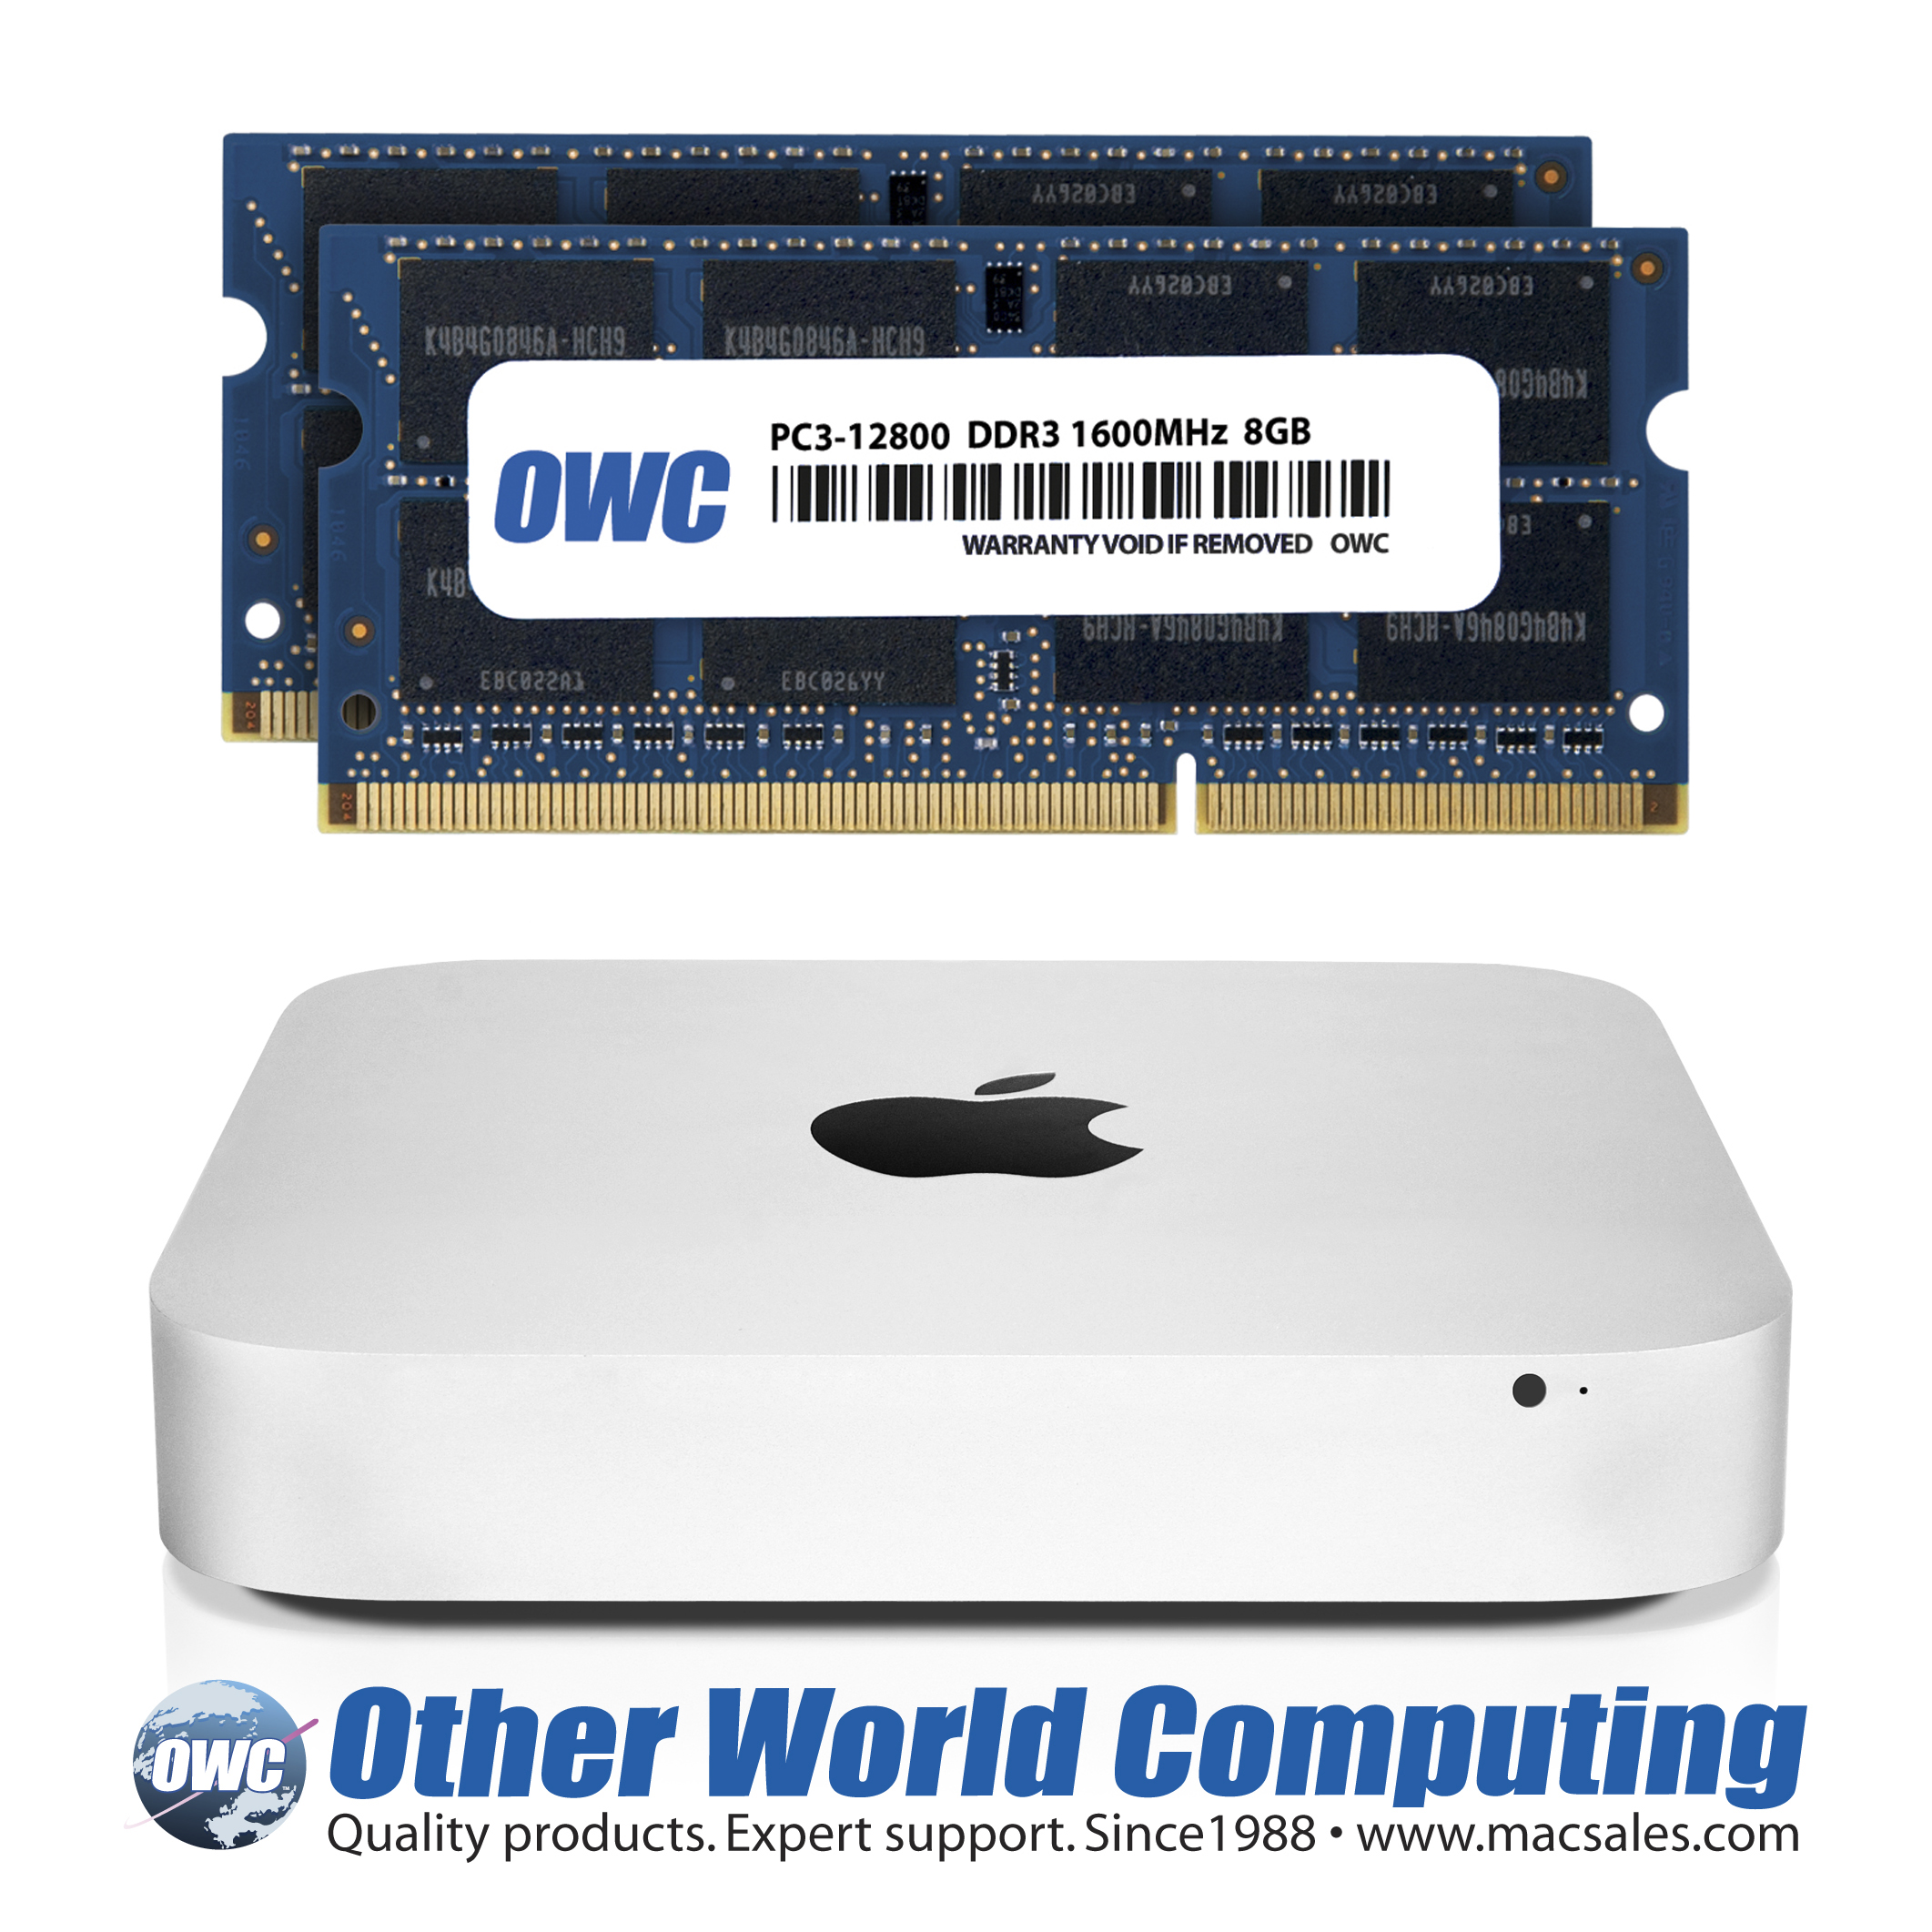 owc coupons other world computing